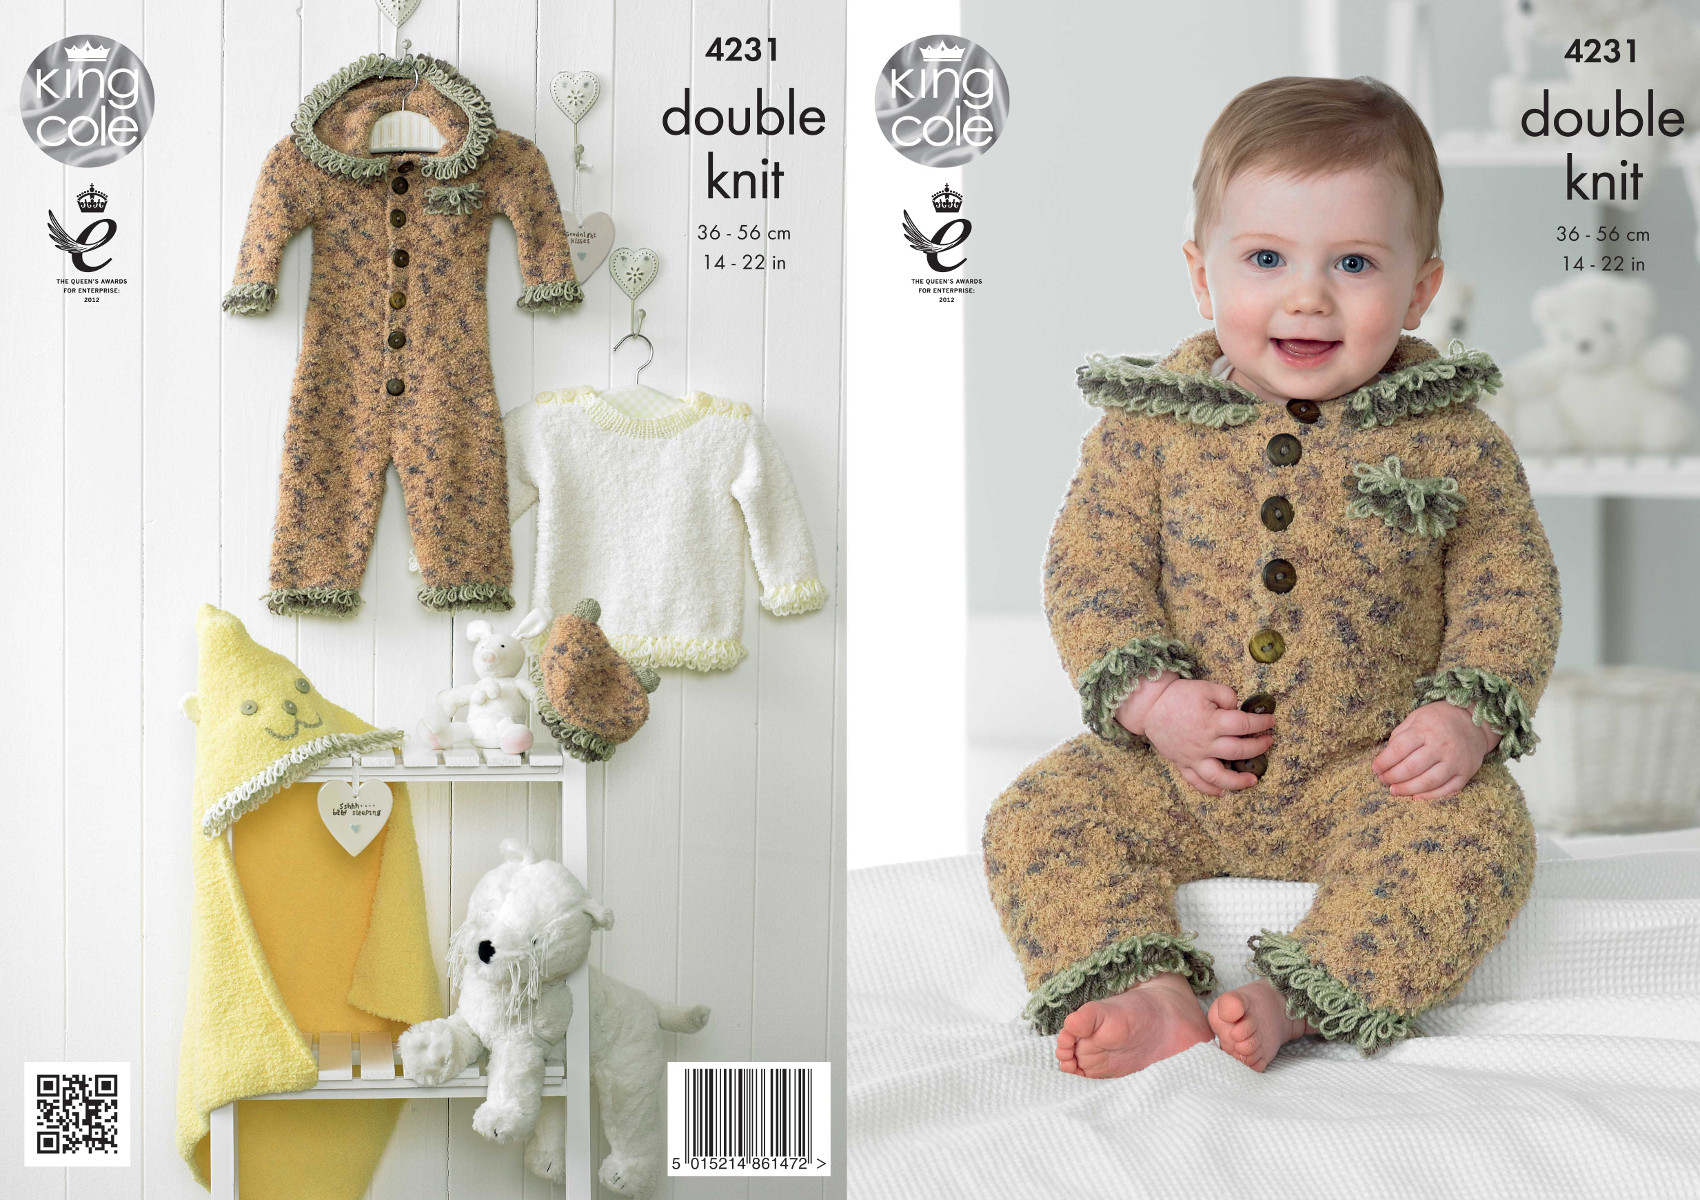 King cole cuddles dk double knit pattern baby sweater onesie hat king cole cuddles dk double knit pattern baby sweater onesie hat blanket 4231 bankloansurffo Image collections